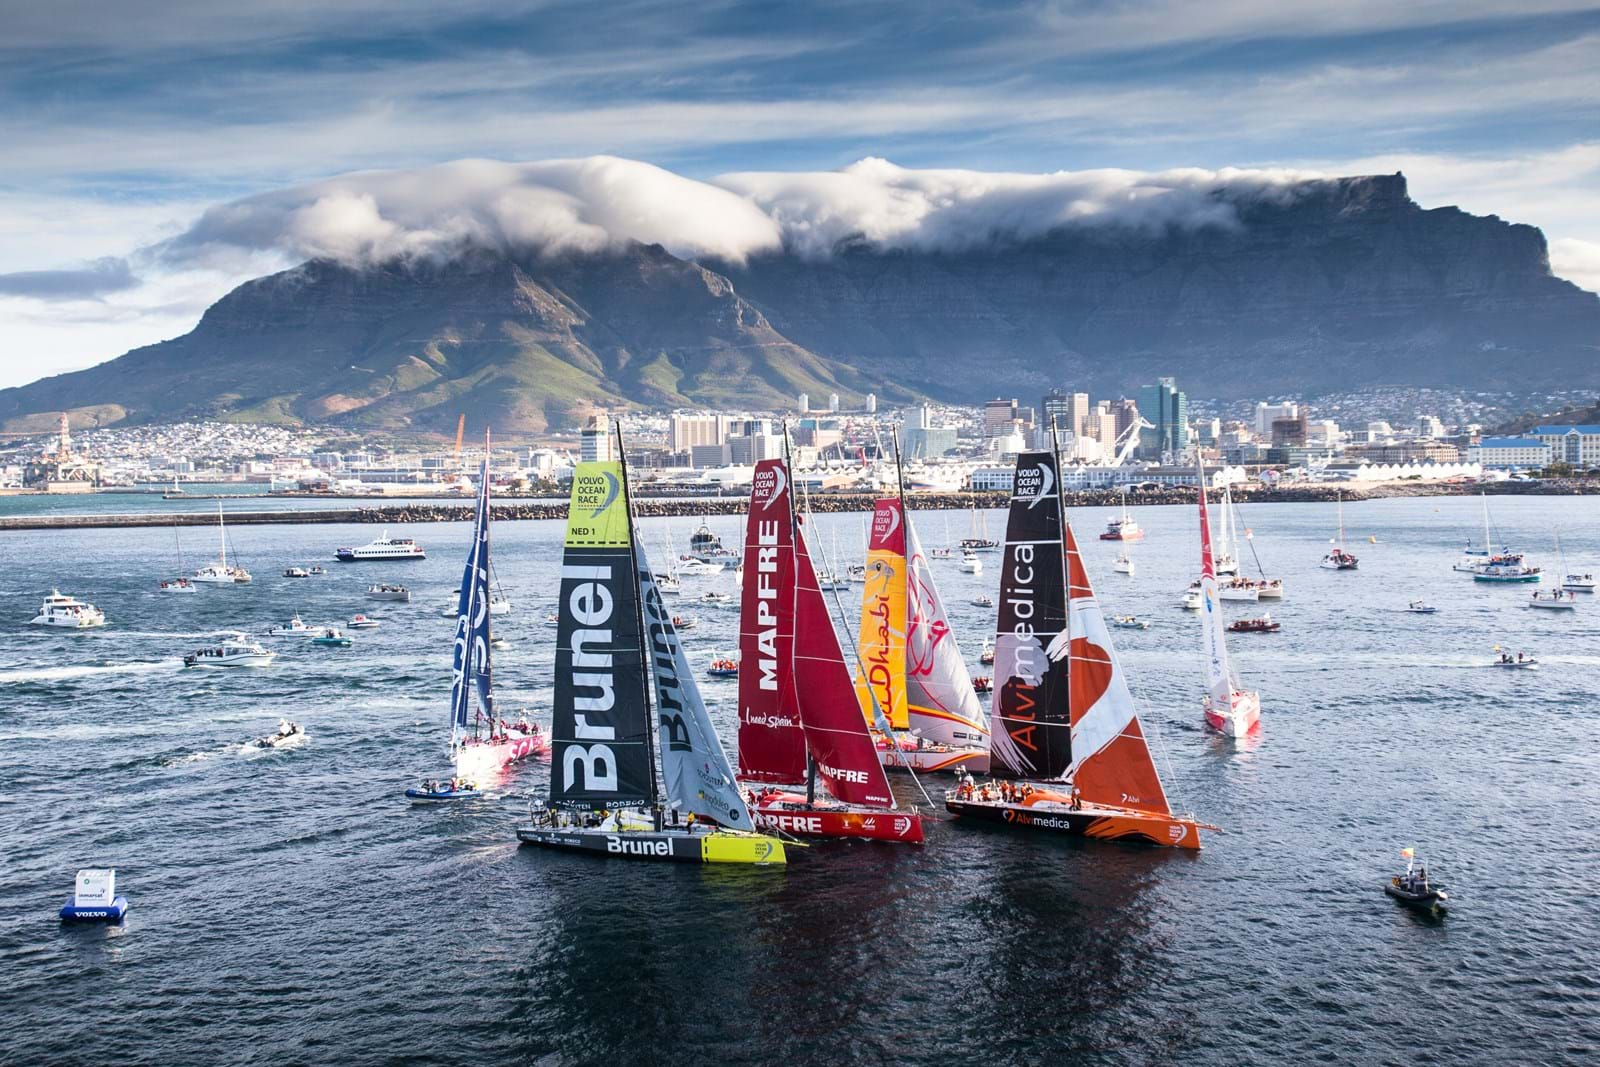 SUNSET+VINE AND VOLVO OCEAN RACE ANNOUNCE RACE BROADCAST PARTNERS